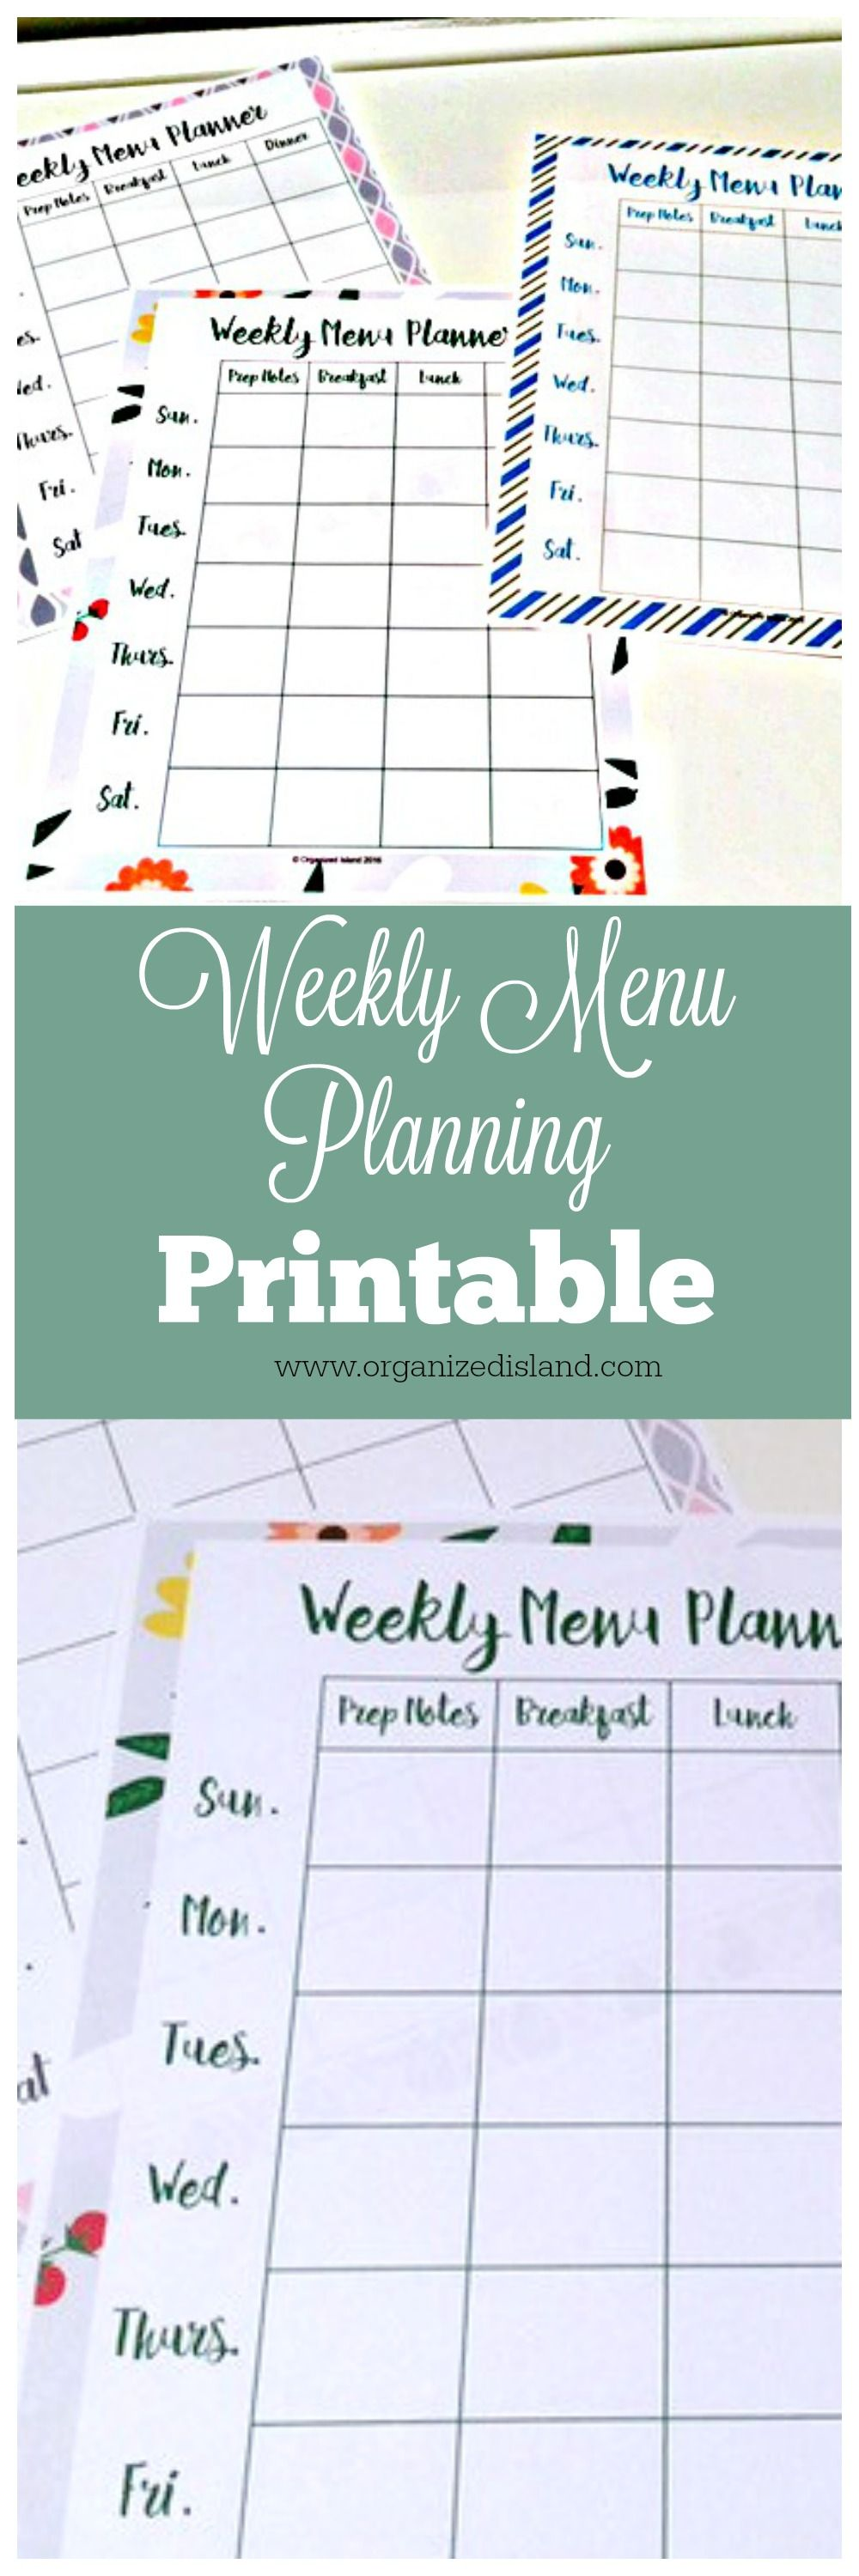 Menu Planning Template - | Pinterest